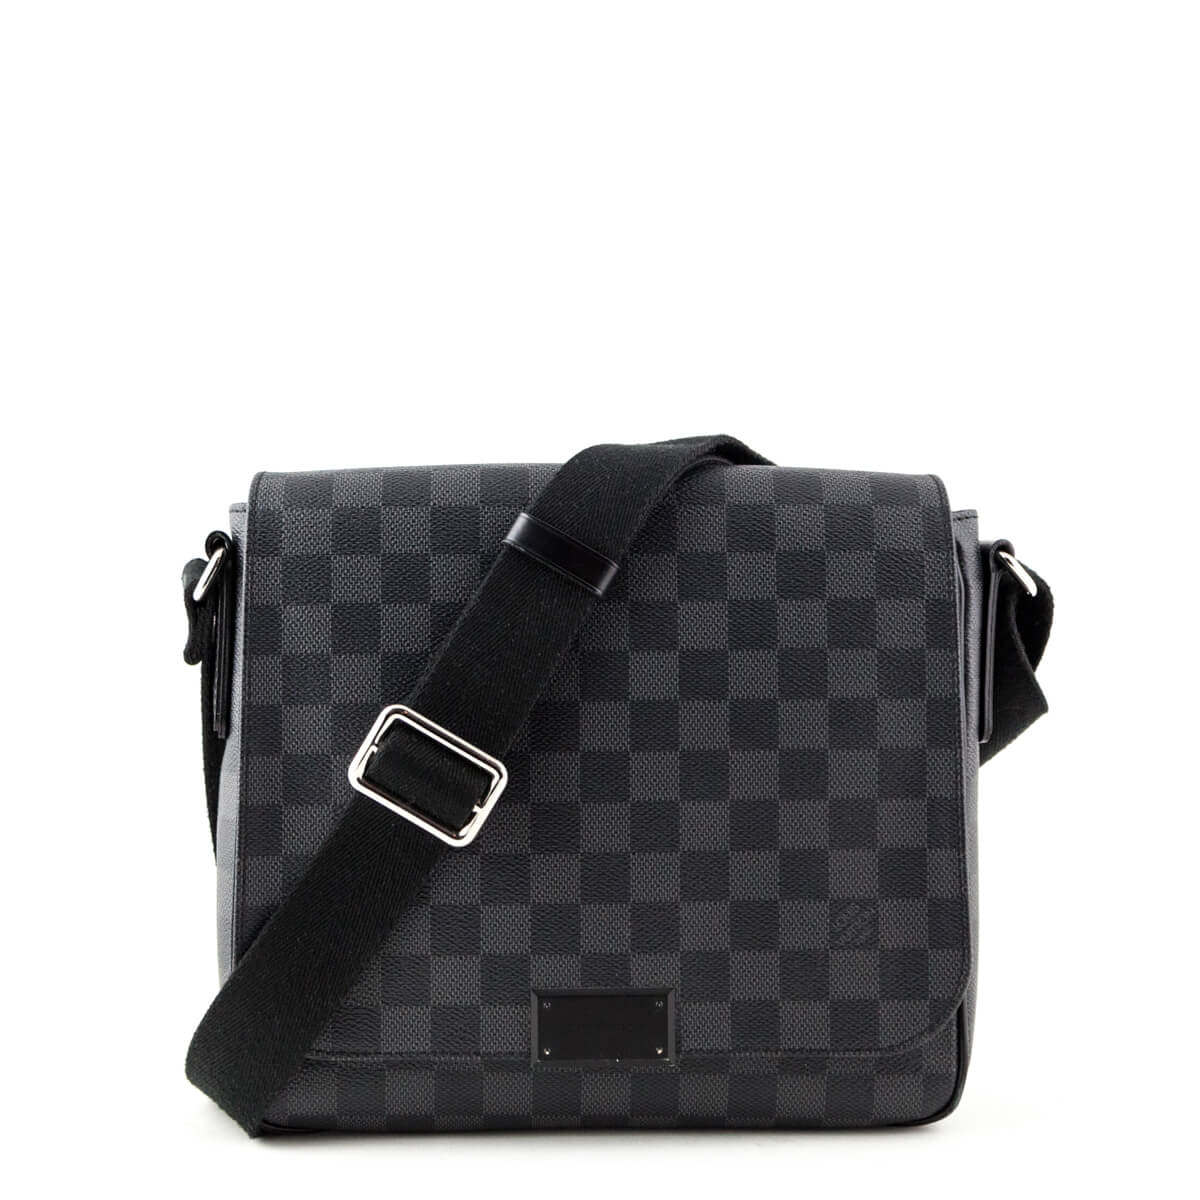 e26e8a246cc4 Louis Vuitton Men s Damier Graphite District PM - LOVE that BAG - Preowned  Authentic Designer Handbags ...